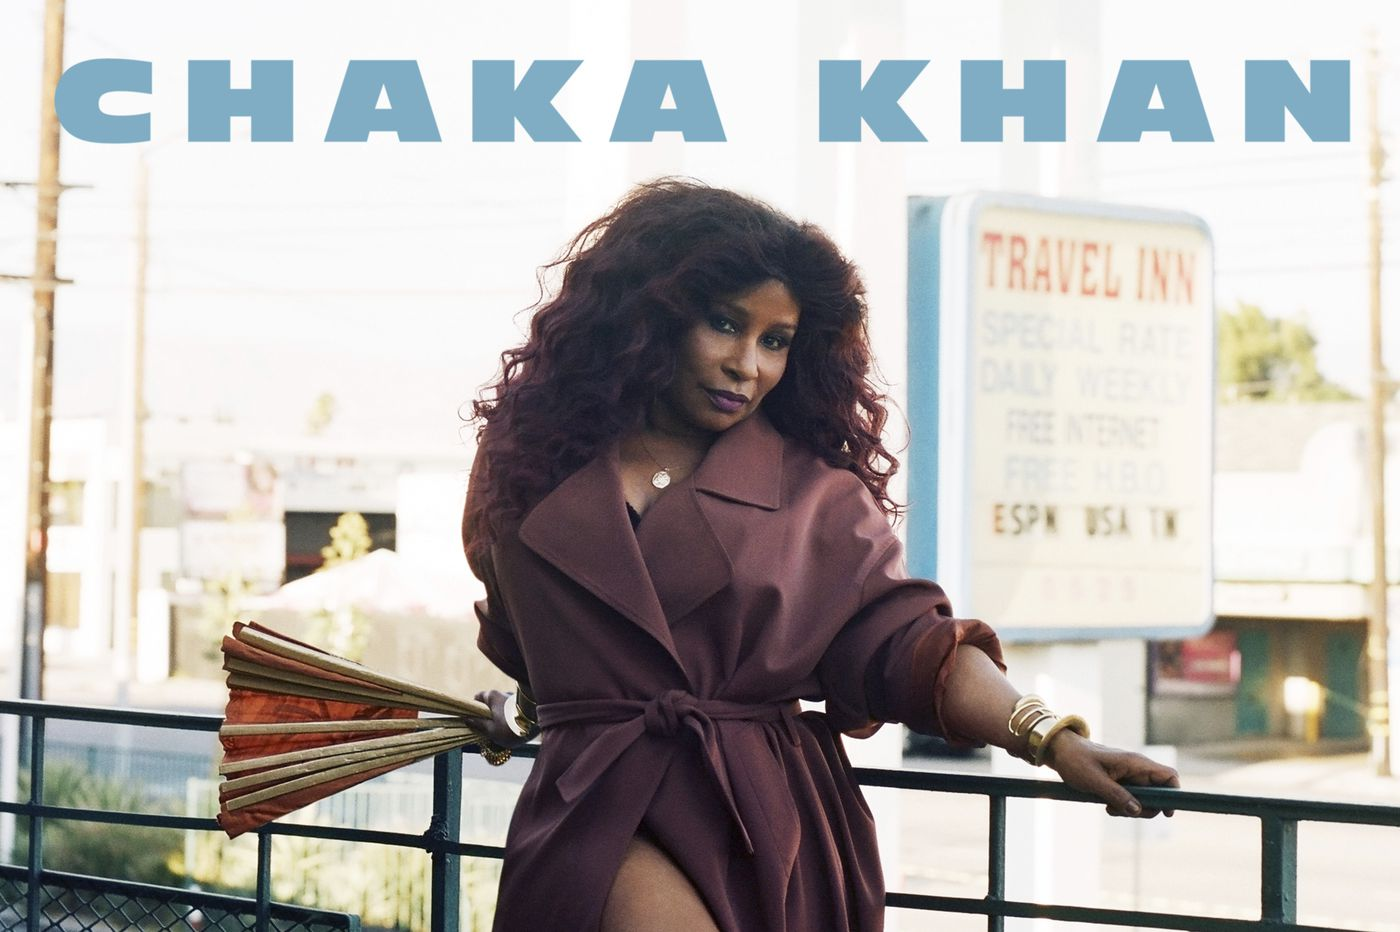 Album reviews: Chaka Khan, the Specials, and music inspired by 'Roma'